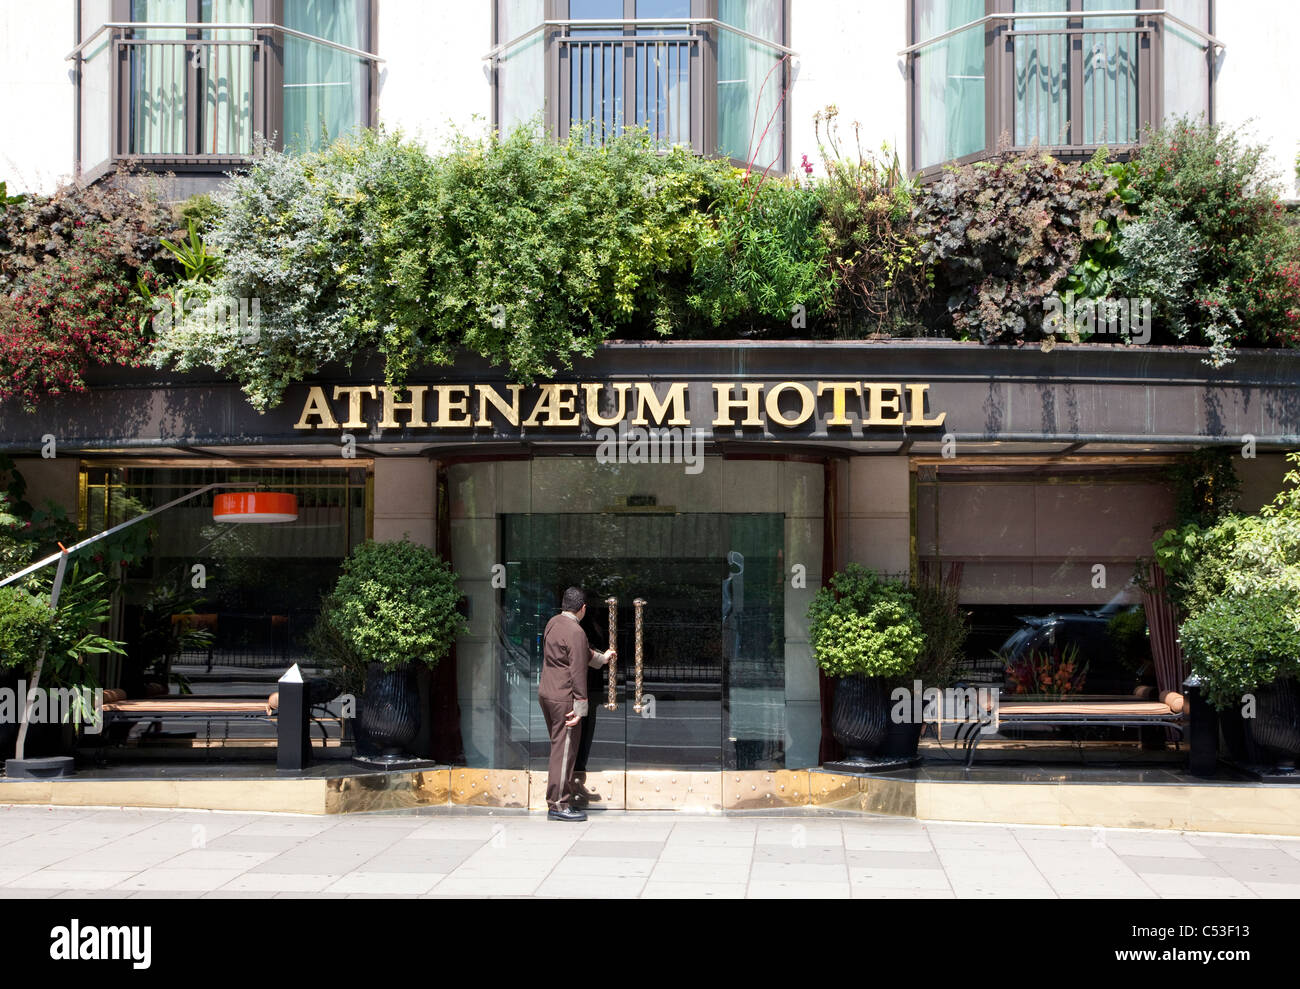 athenaeum hotel piccadilly london stock photo royalty. Black Bedroom Furniture Sets. Home Design Ideas